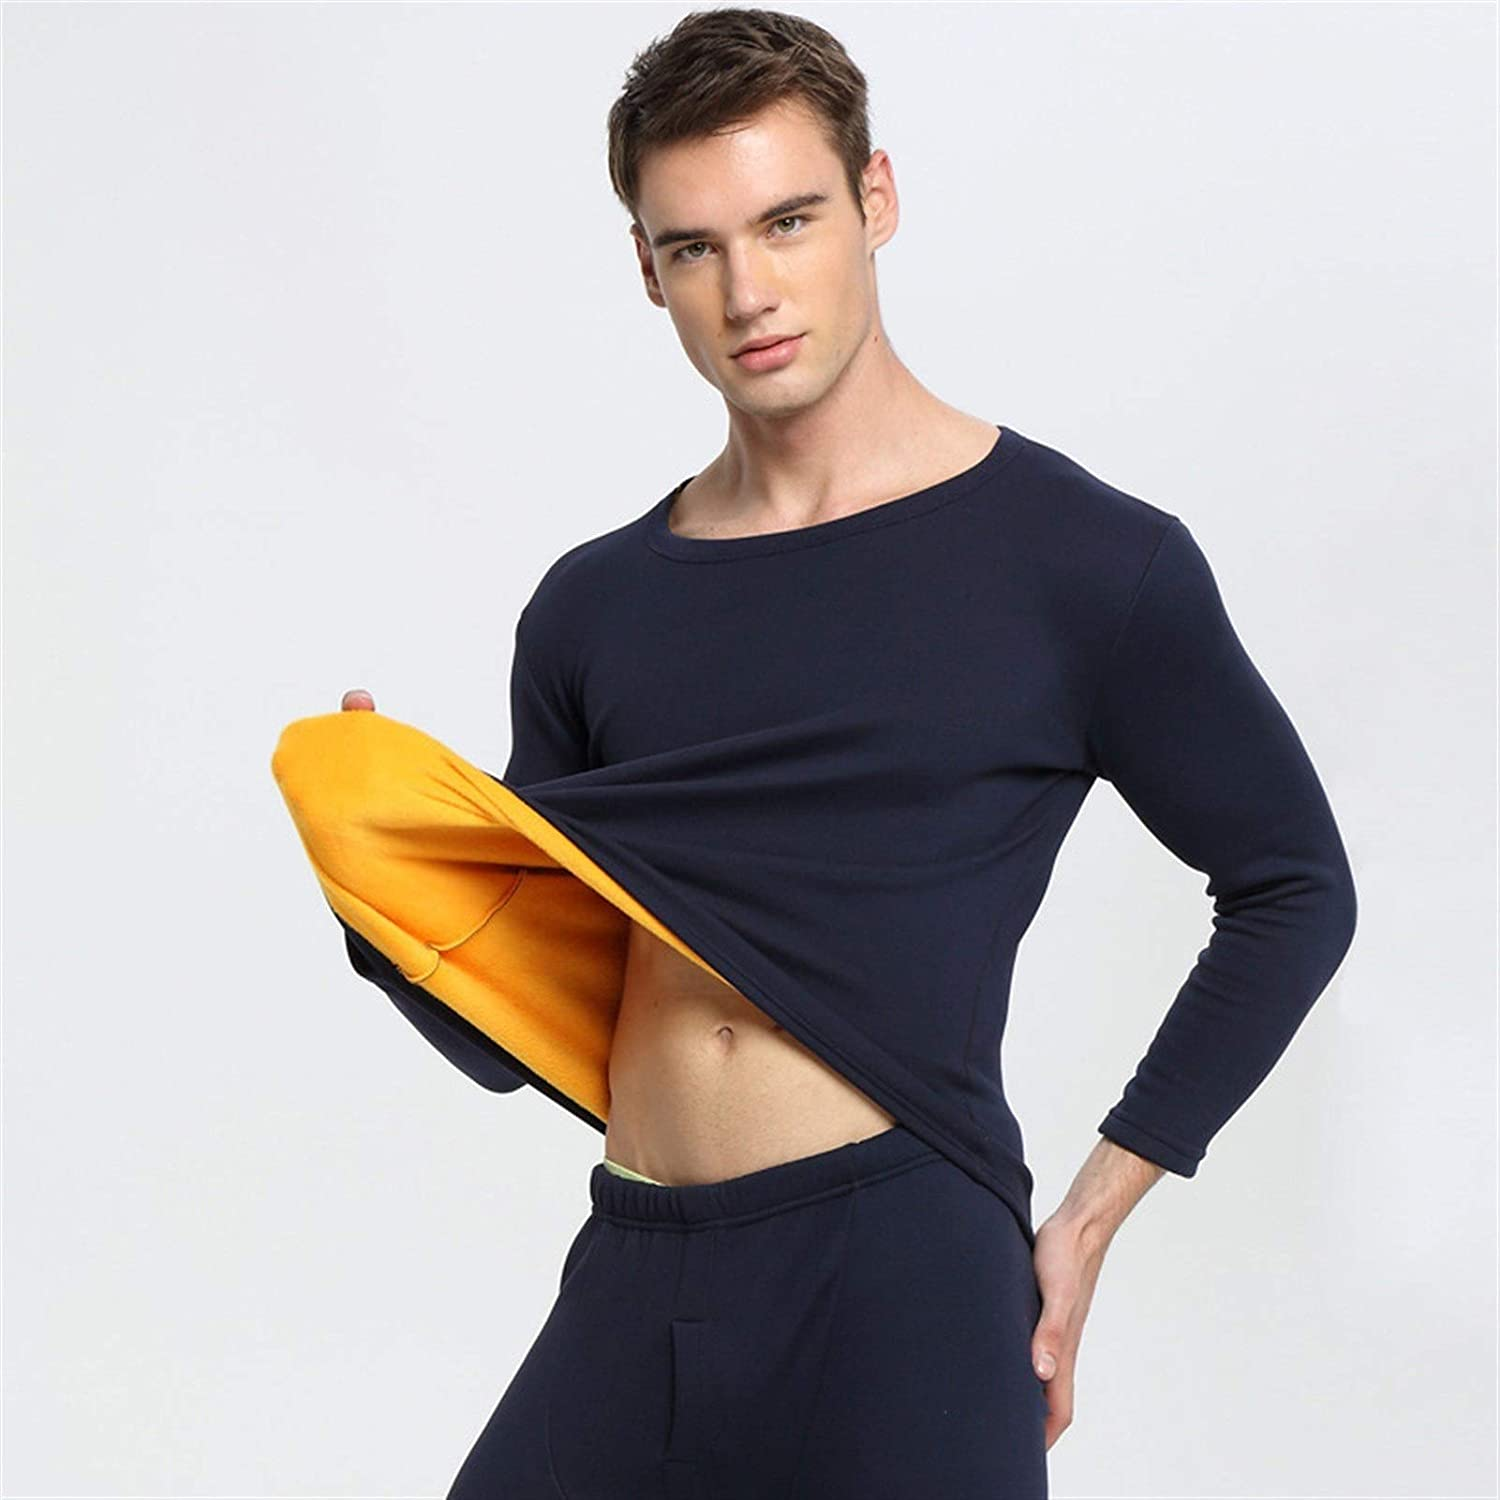 ZHANGZEHONG Thermal Underwear Men Winter Women Long Johns Sets Fleece Keep Warm in Cold Weather Size L to 6XL (Color : Menblack, Size : XXXX-Large)